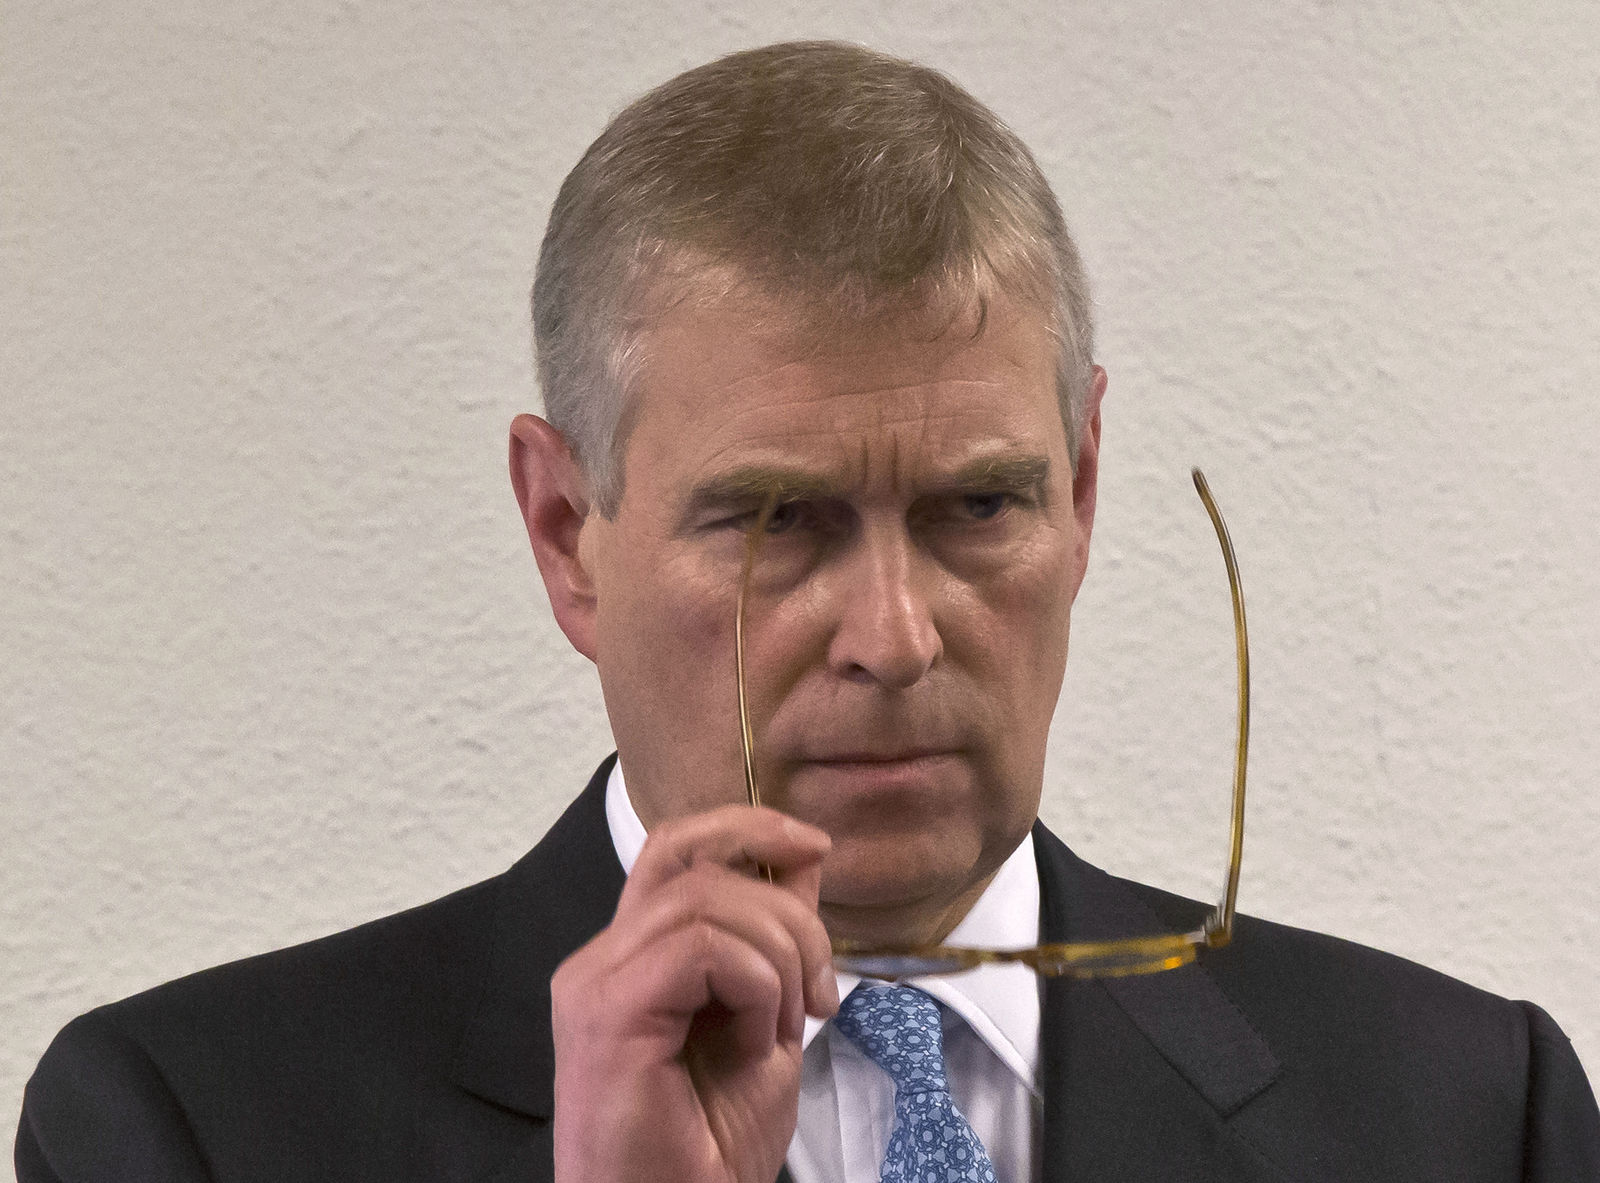 FILE - In this file photo dated Thursday, Jan. 22, 2015, Britain's Prince Andrew, puts on his glasses prior to his speech to business leaders during a reception at the sideline of the World Economic Forum in Davos.{ } (AP Photo/Michel Euler, FILE)